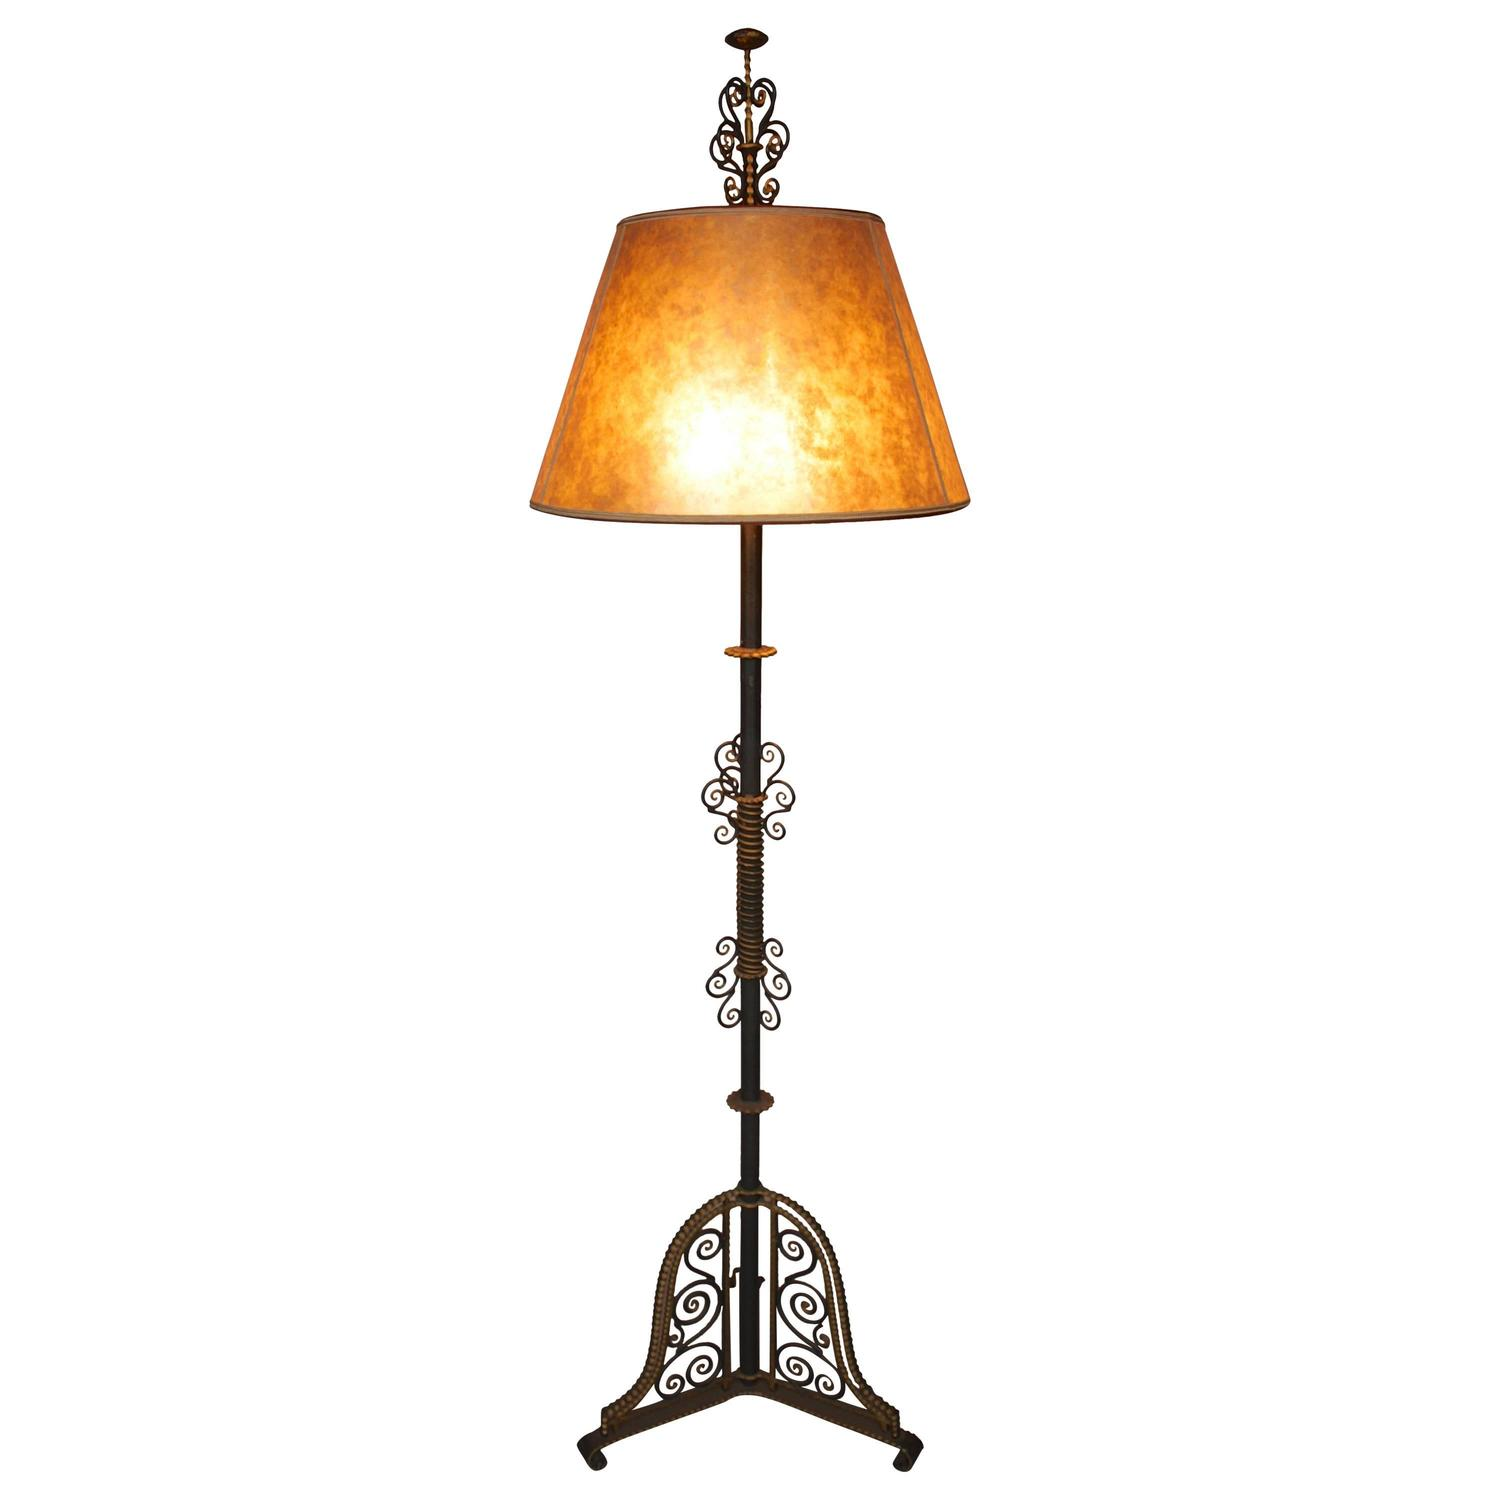 Spectacular Large Scale 1920 S Spanish Revival Floor Lamp